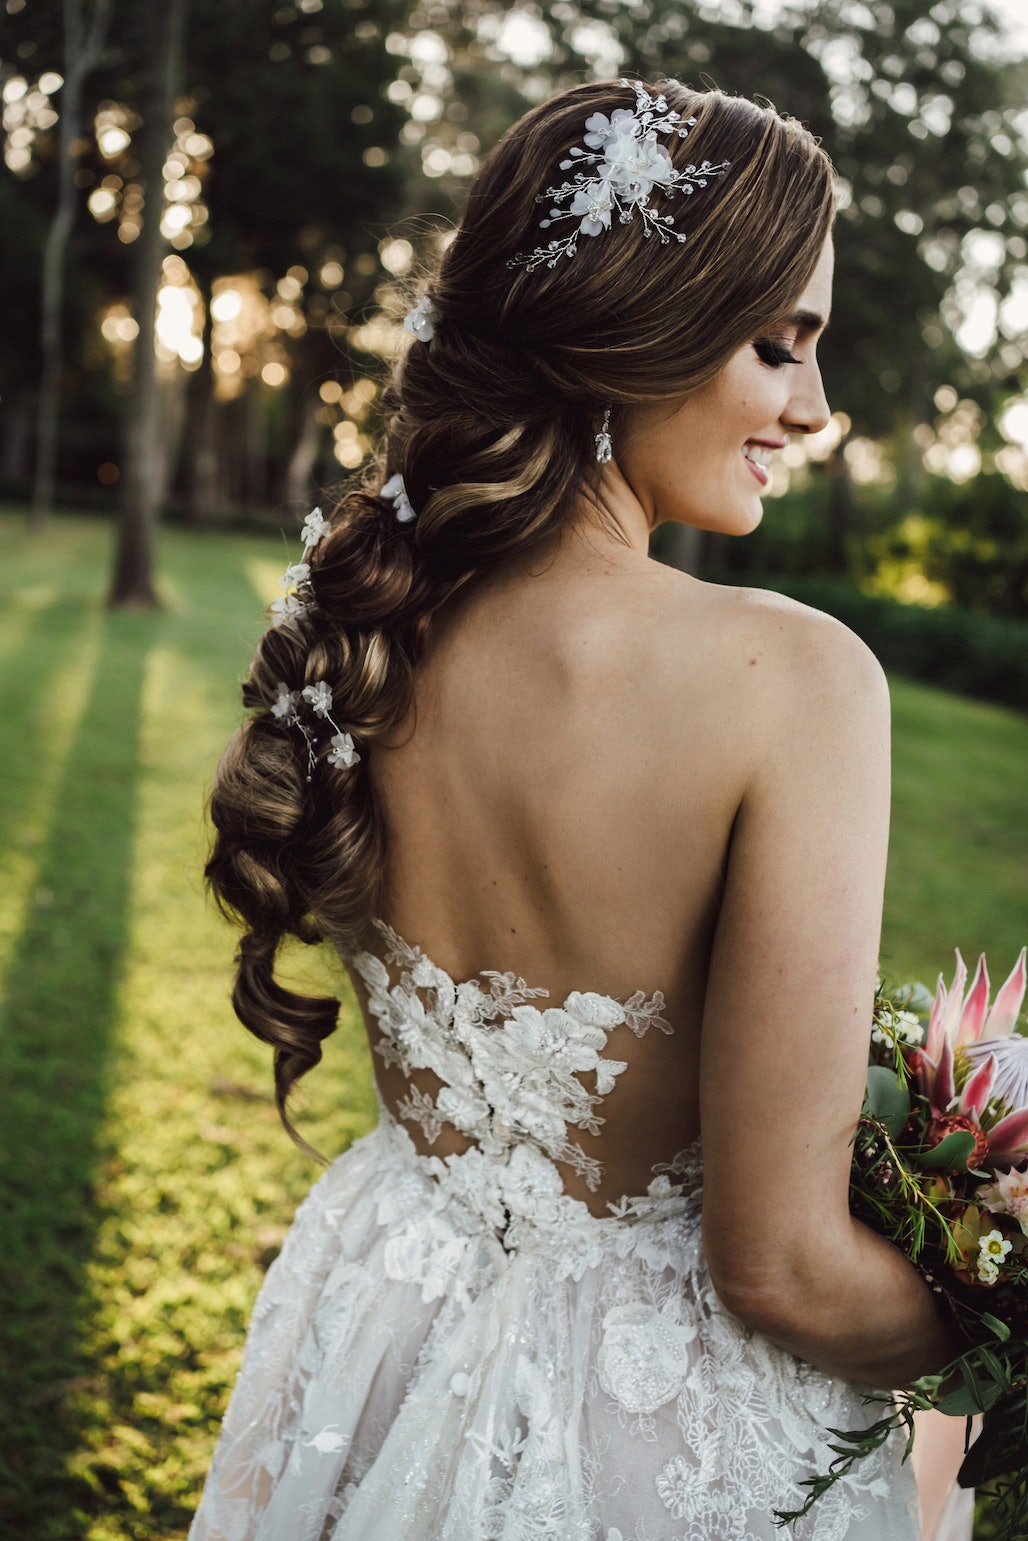 Bride with long braided hair looking off into distance holding a bouquet